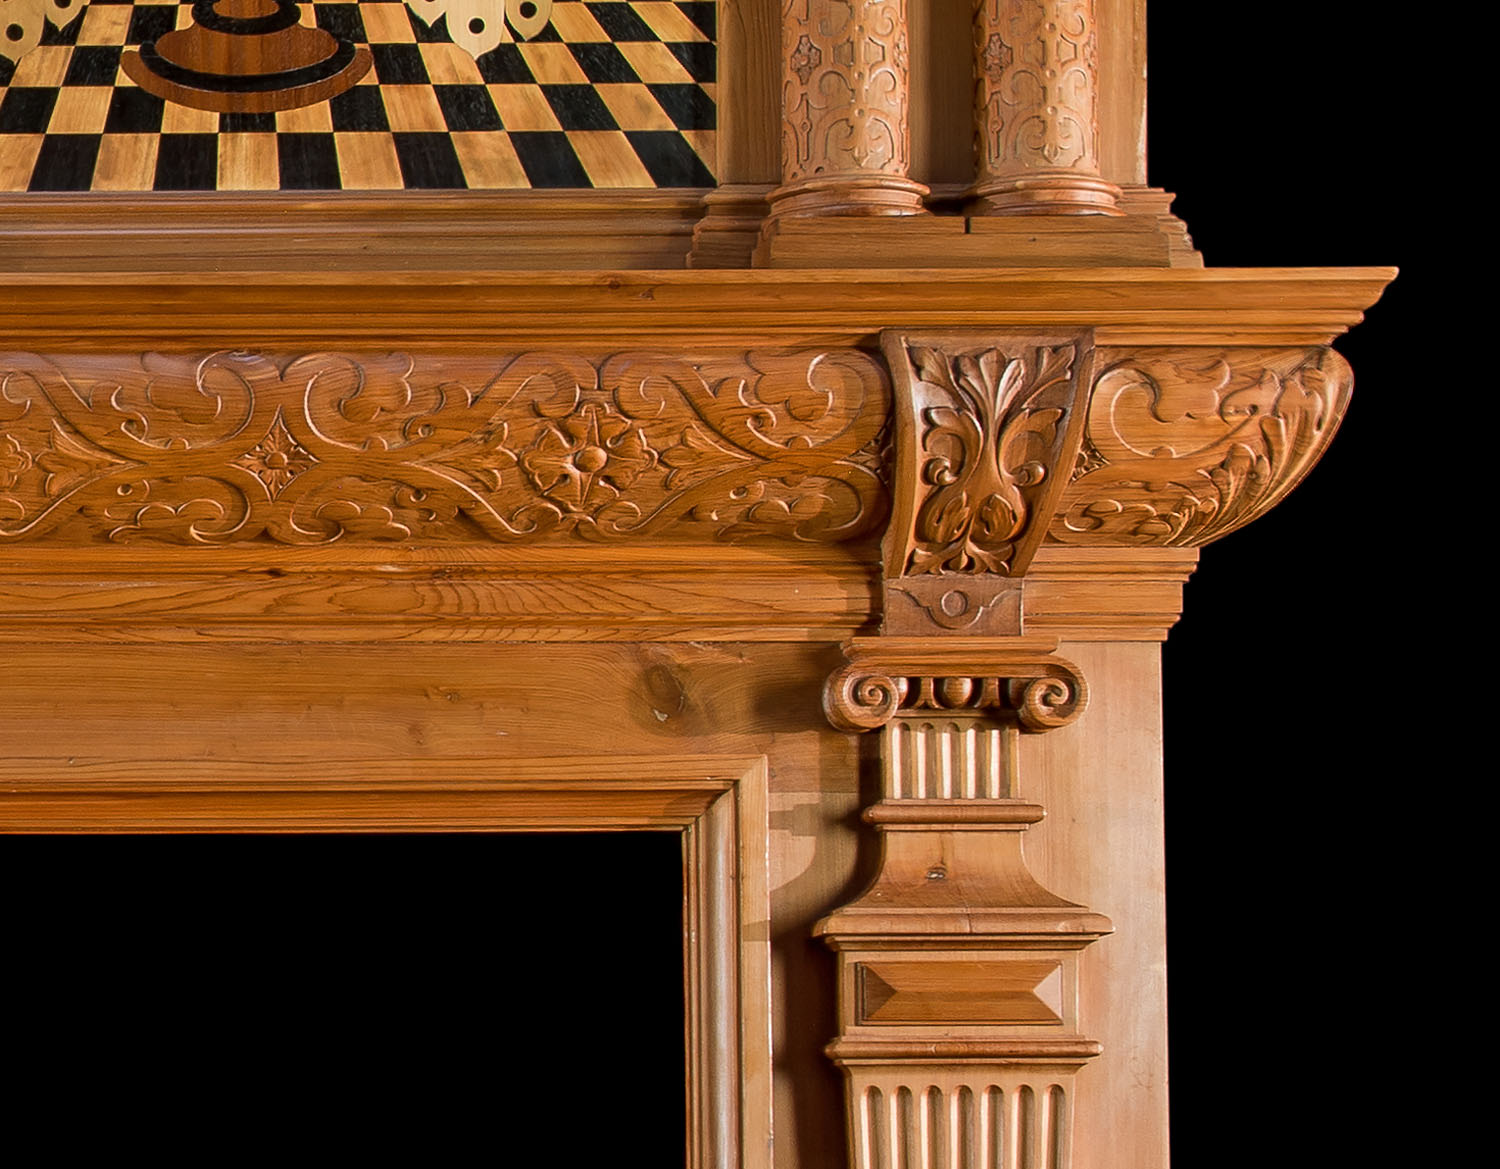 A Jacobean Revival inlaid cedar wood Fireplace Mantel